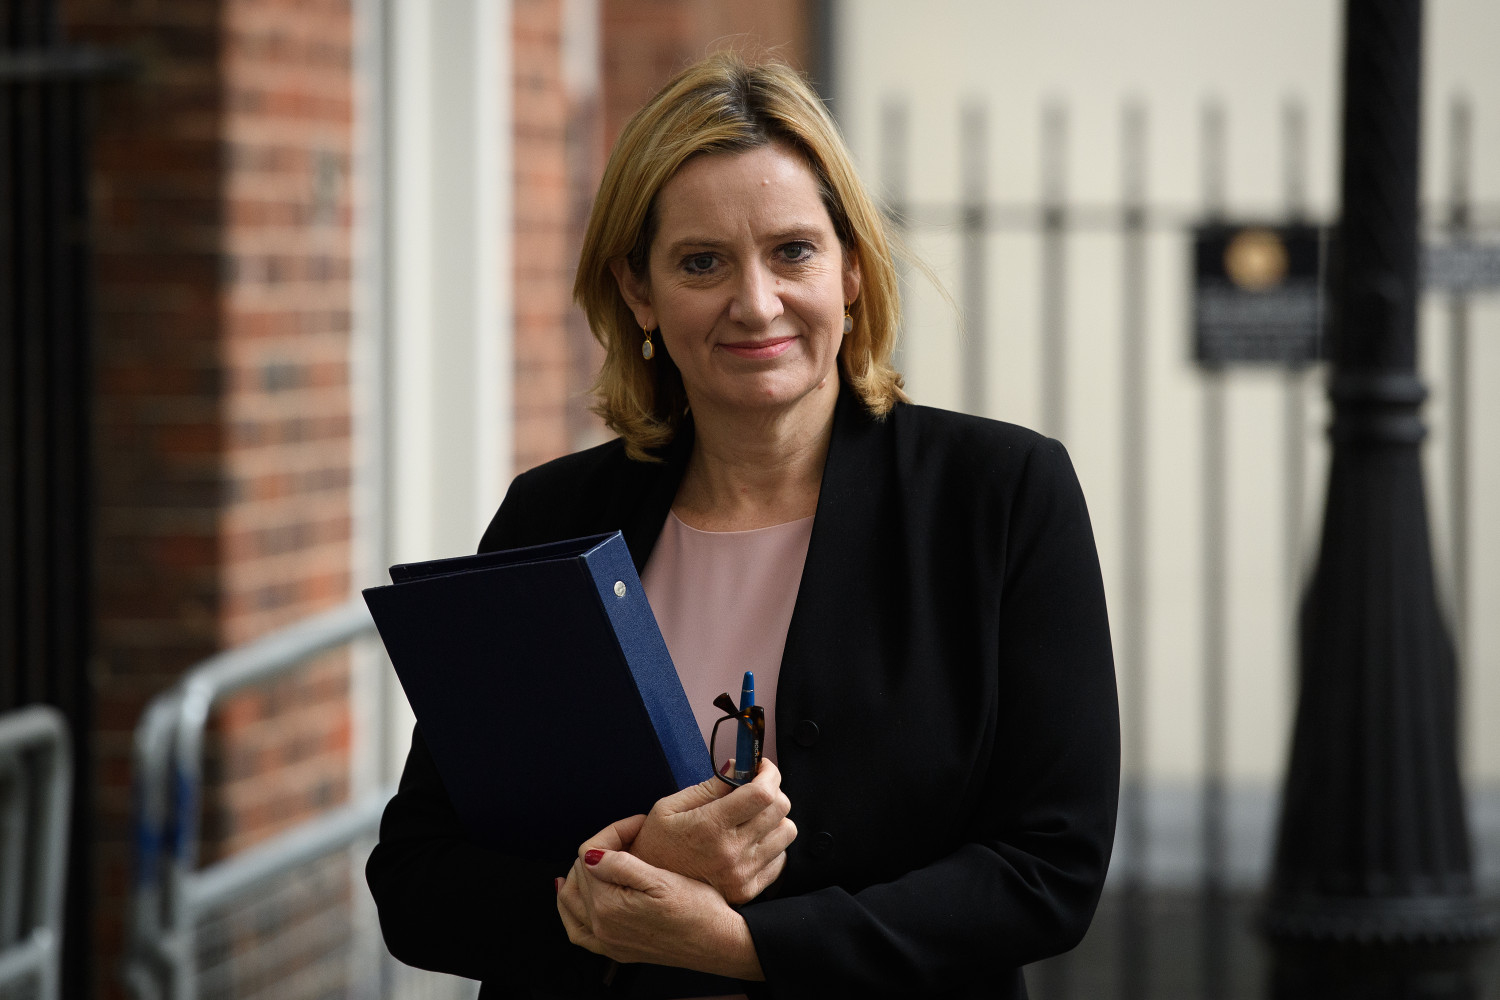 Home Secretary Amber Rudd (Leon Neal/Getty Images)